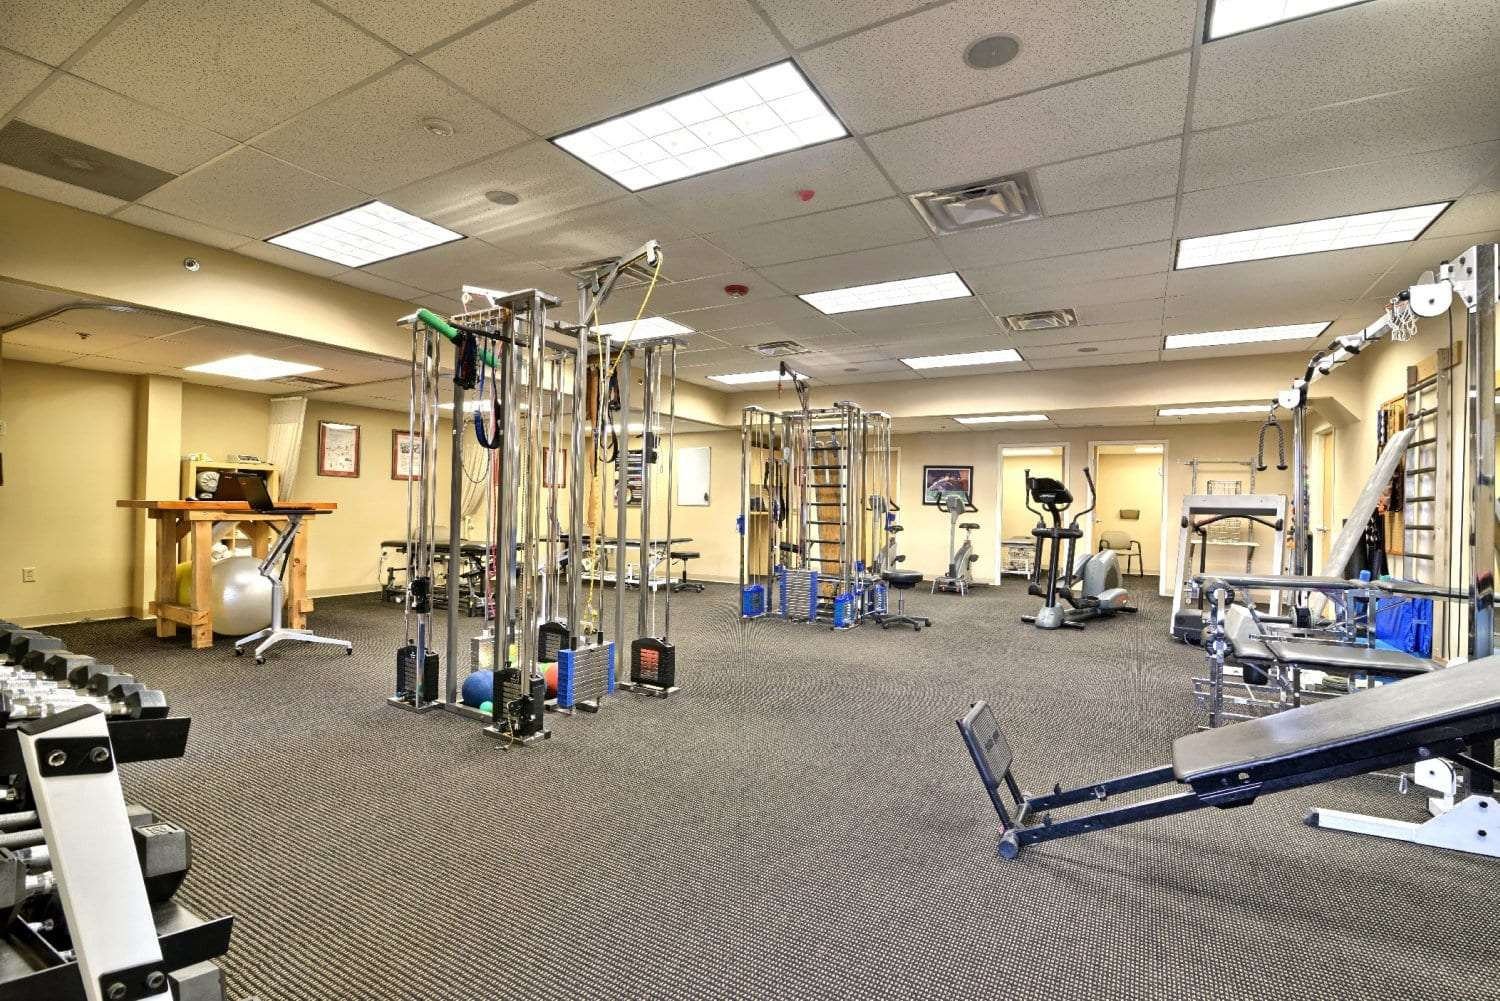 Here is an image of our well maintained equipment at our physical therapy clinic in Springfield, Massachusetts.